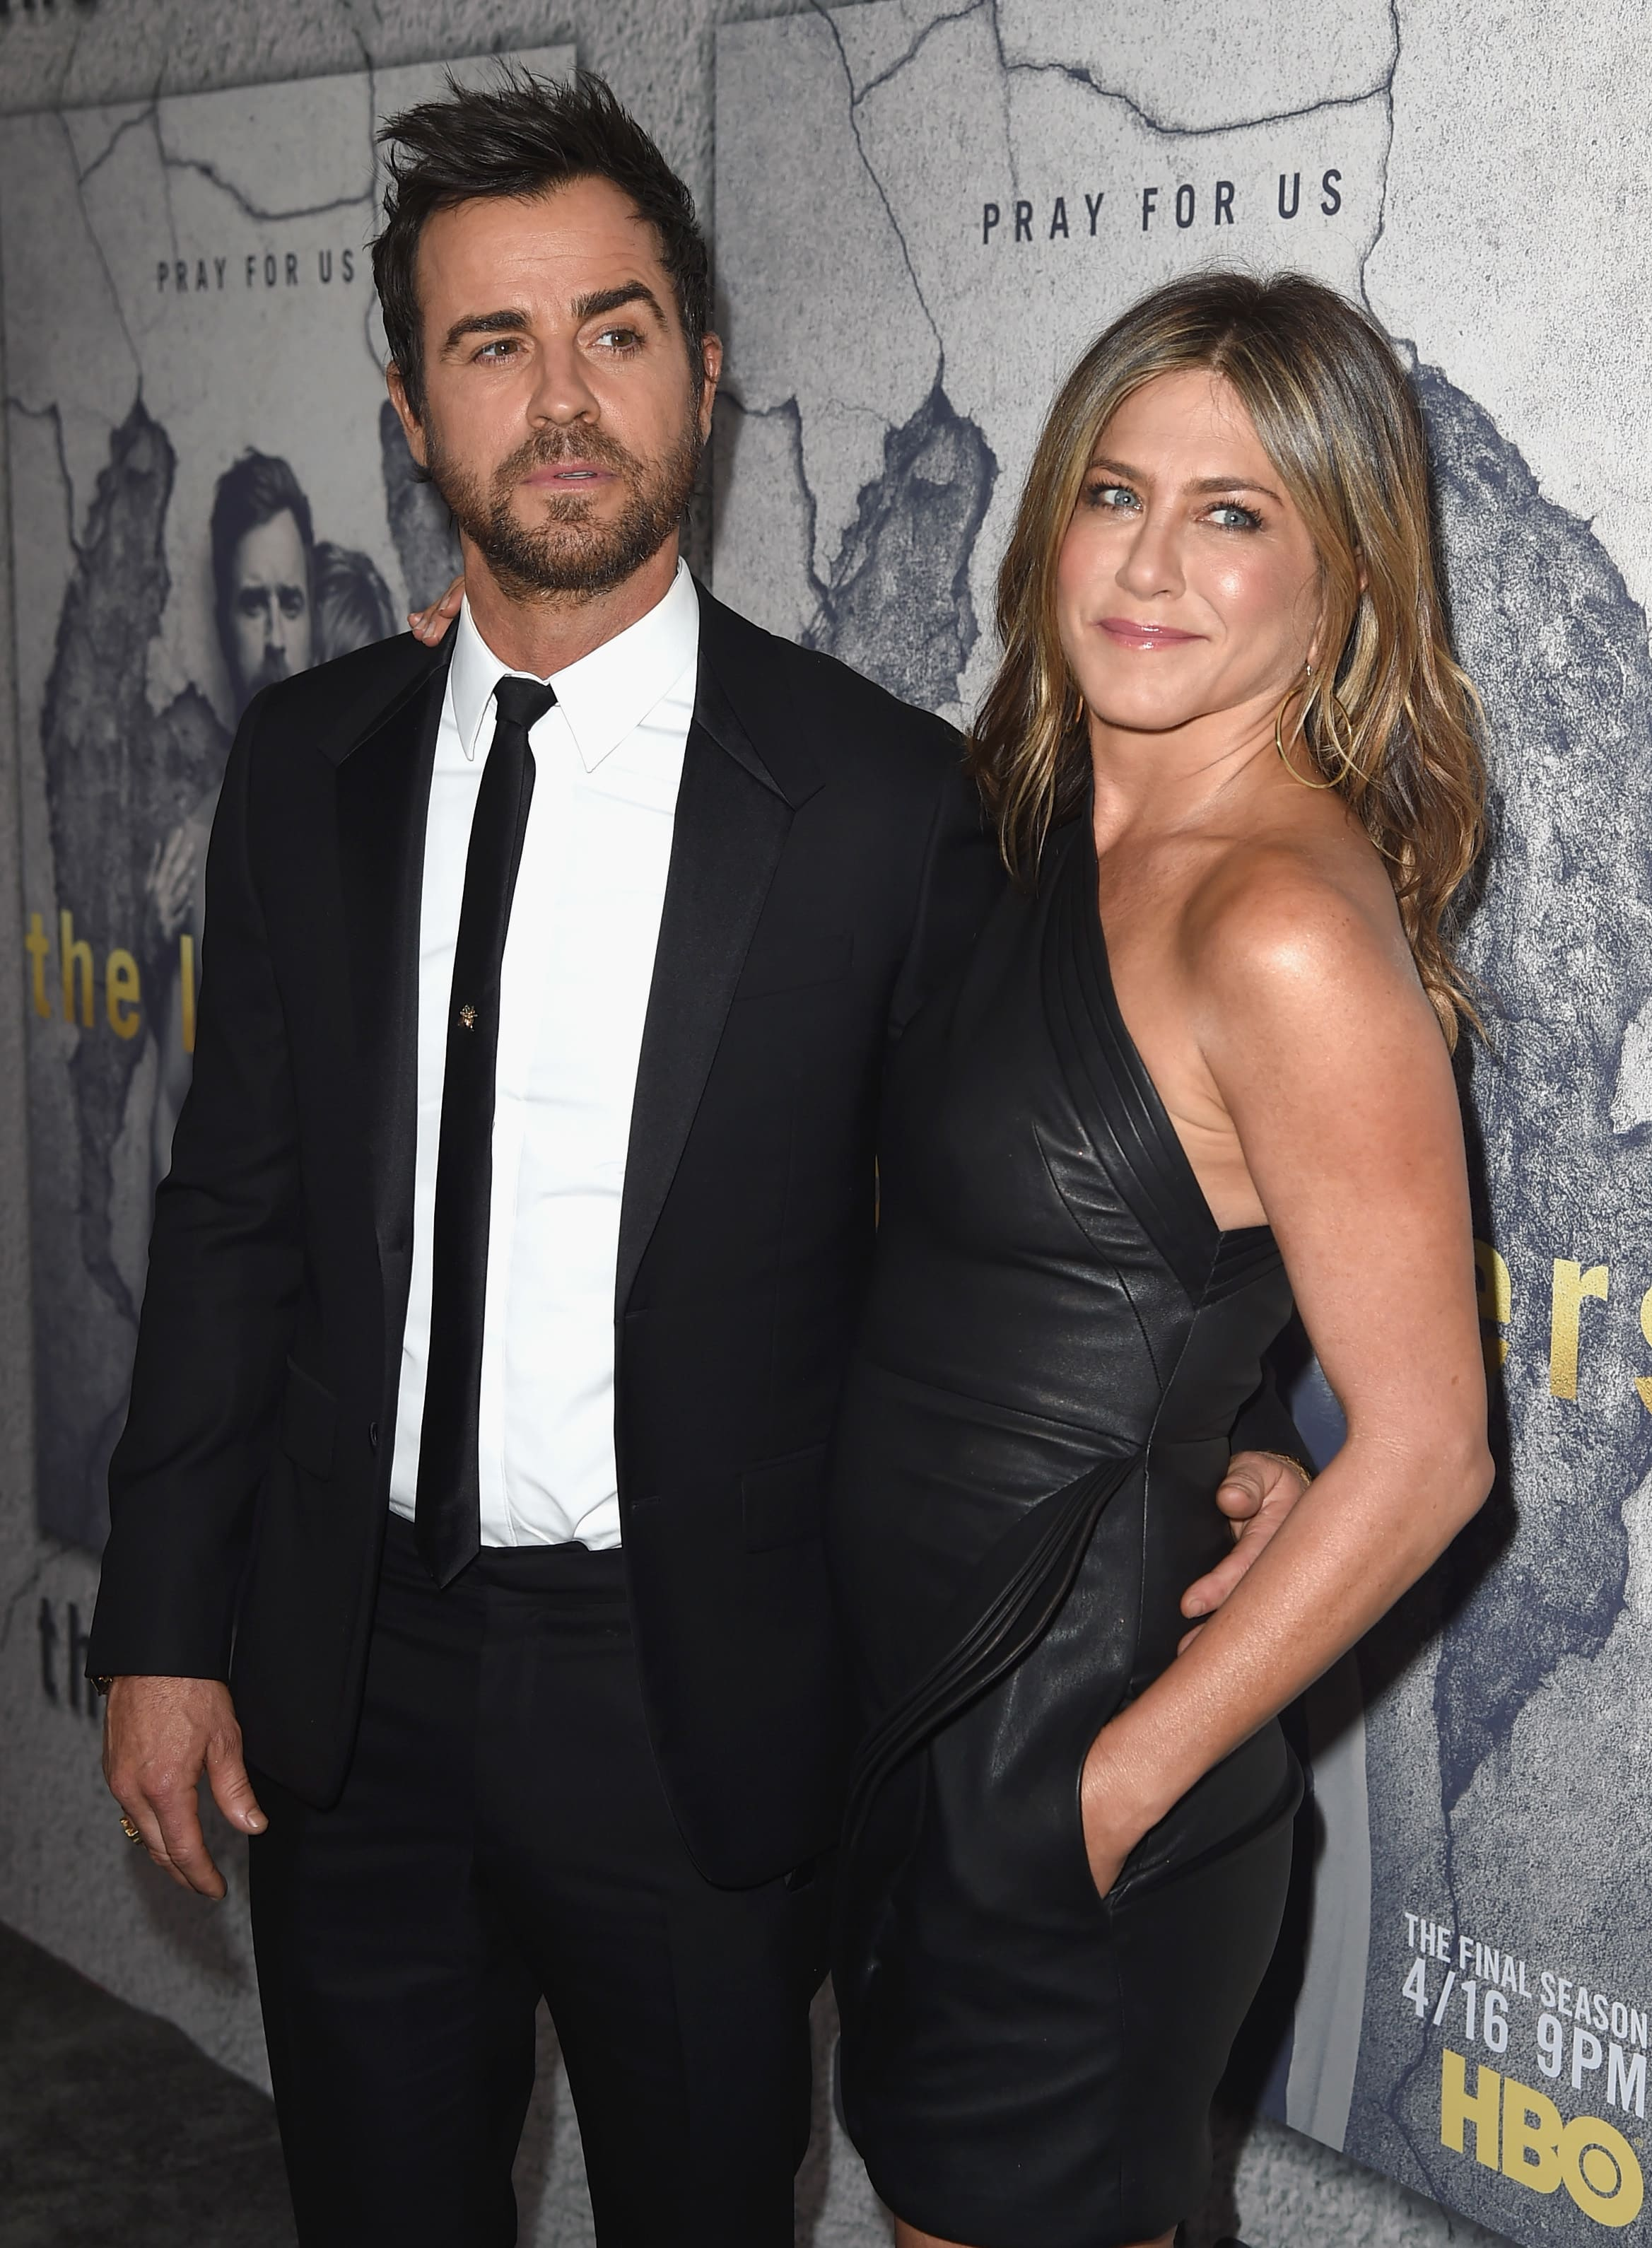 is-justin-theroux-dating-jennifer-aniston-hardcore-sex-obese